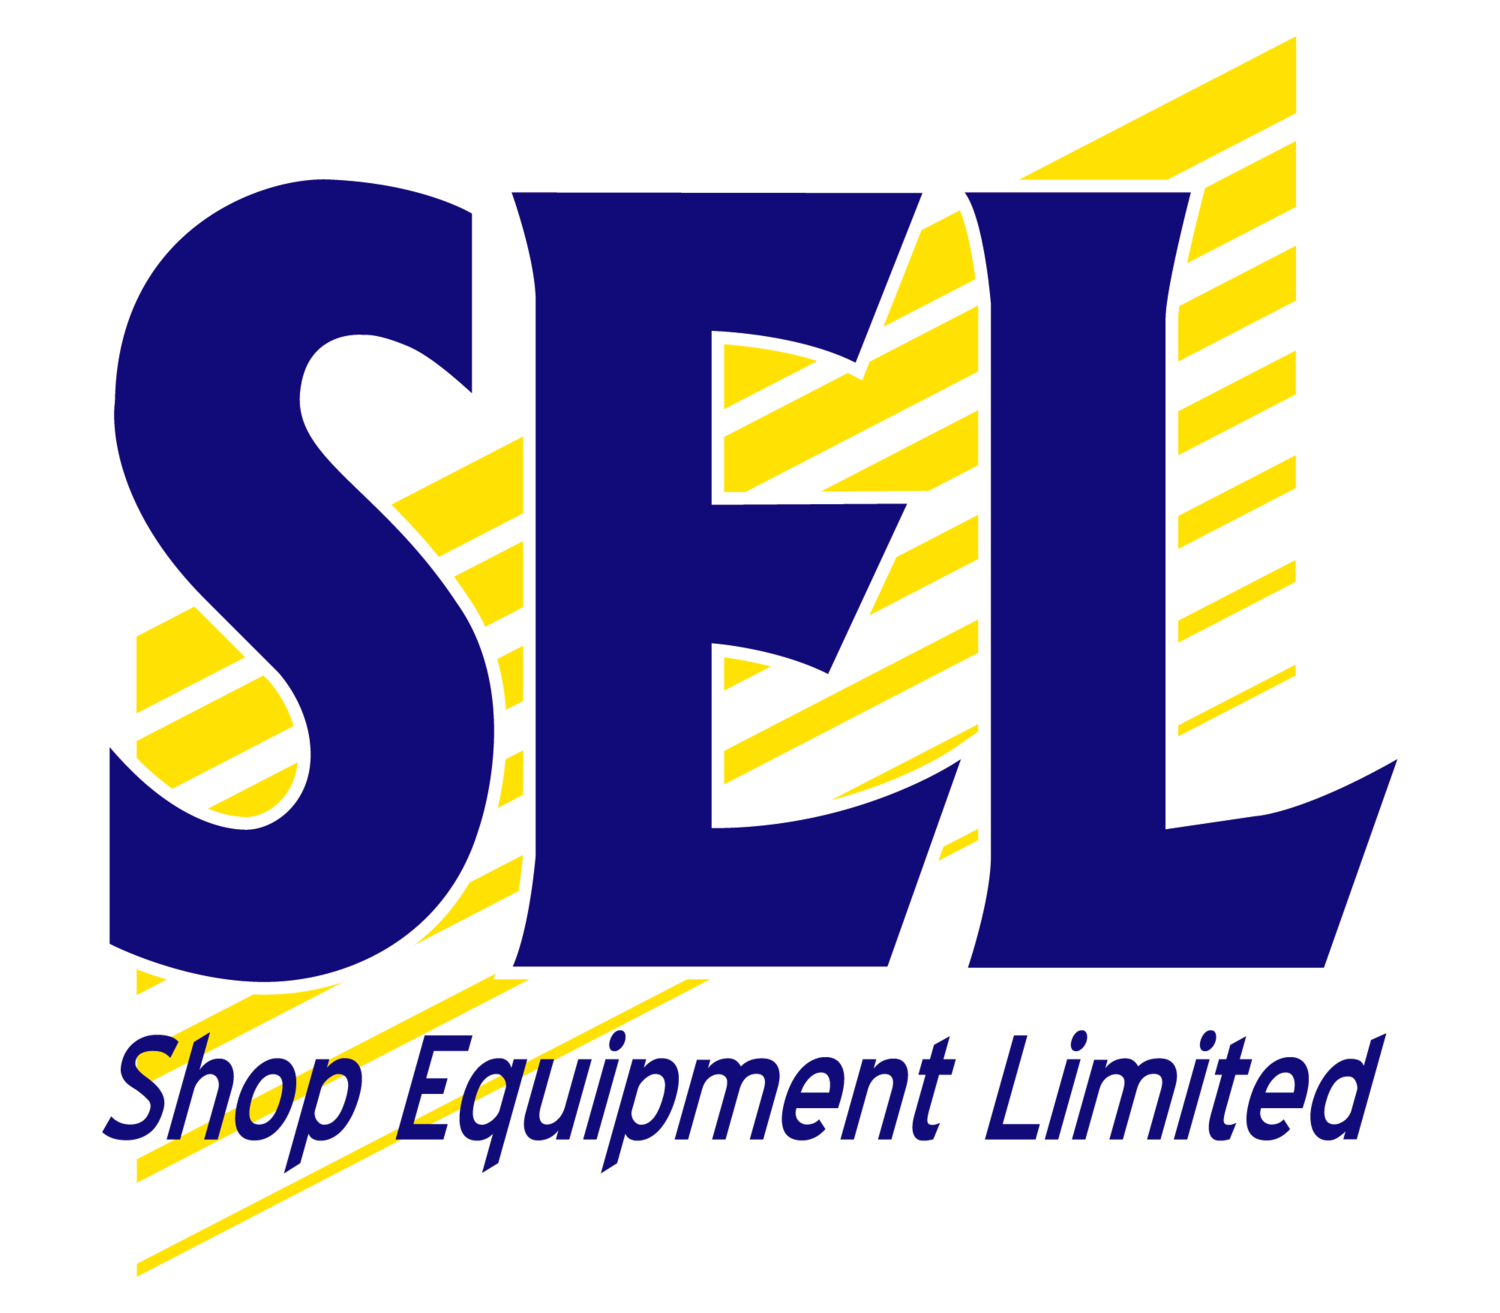 Shop Equipment Limited | Shop Equipment | Shopfitting | Shelving | Trolleys | Counters and Checkouts